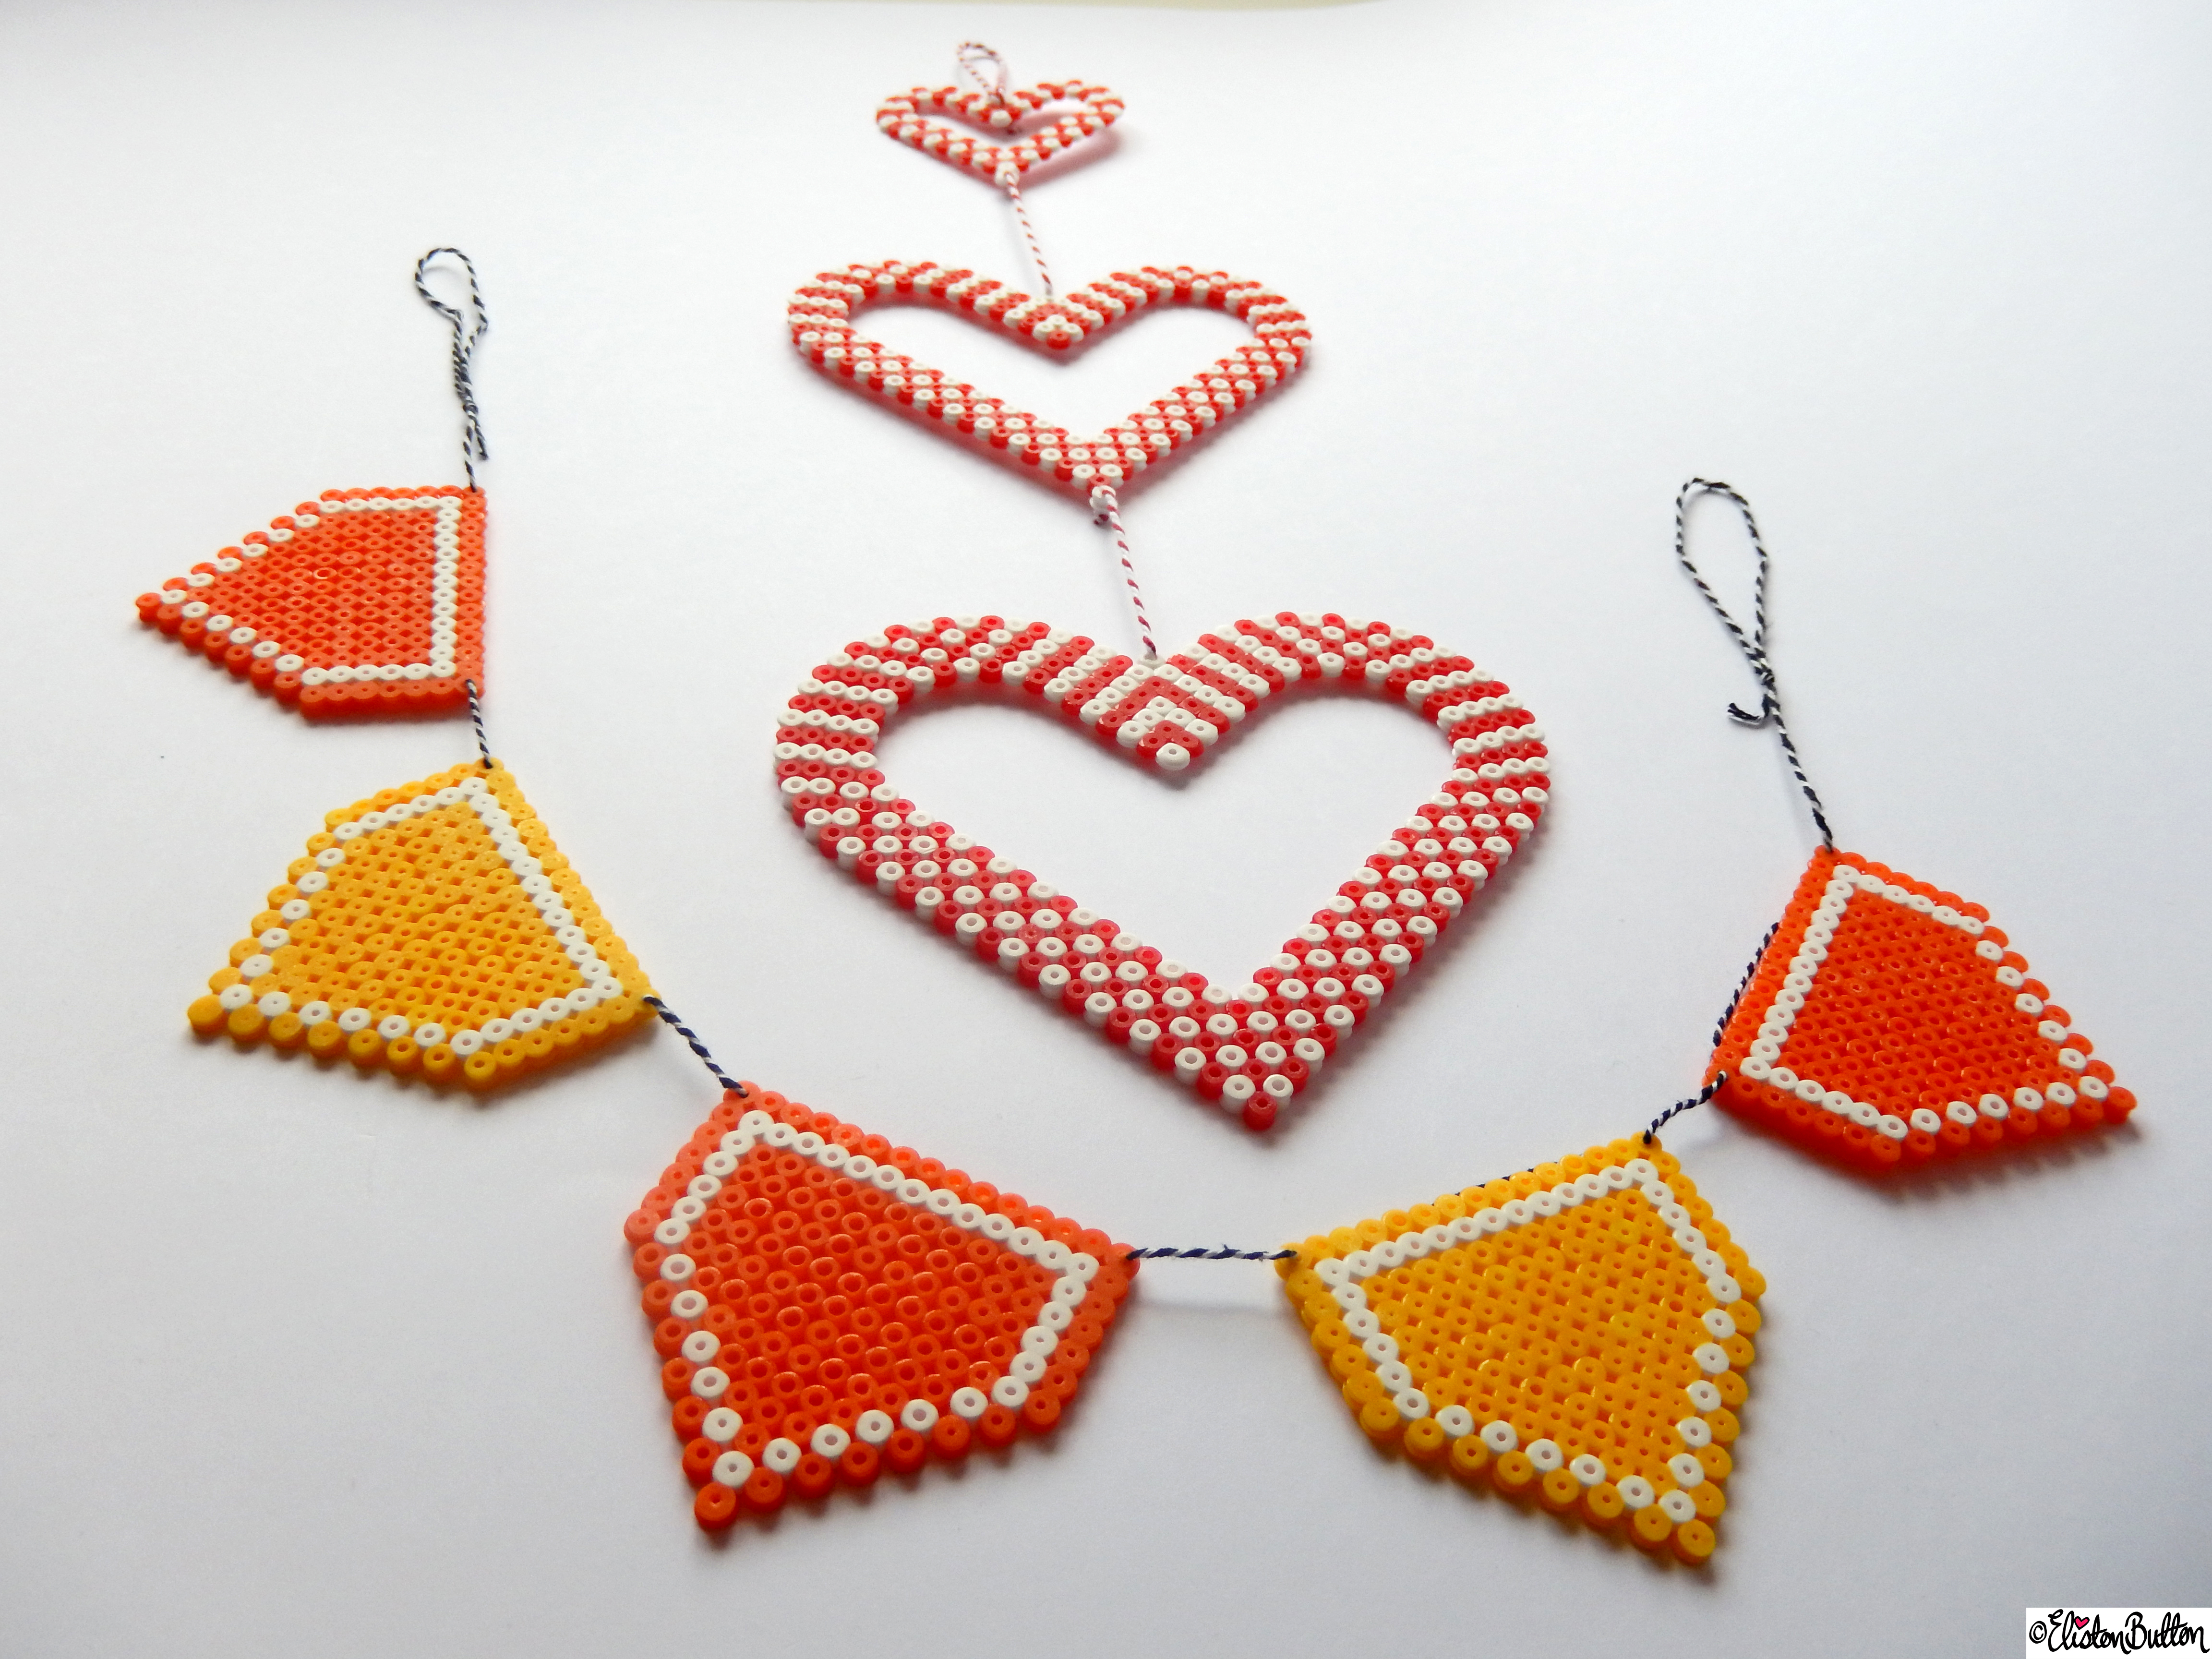 Picture Bead Wall Hanging Bunting and Hearts - Create 28 - No. 11&12 - Picture Bead Wall Hangings at www.elistonbutton.com - Eliston Button - That Crafty Kid – Art, Design, Craft & Adventure.